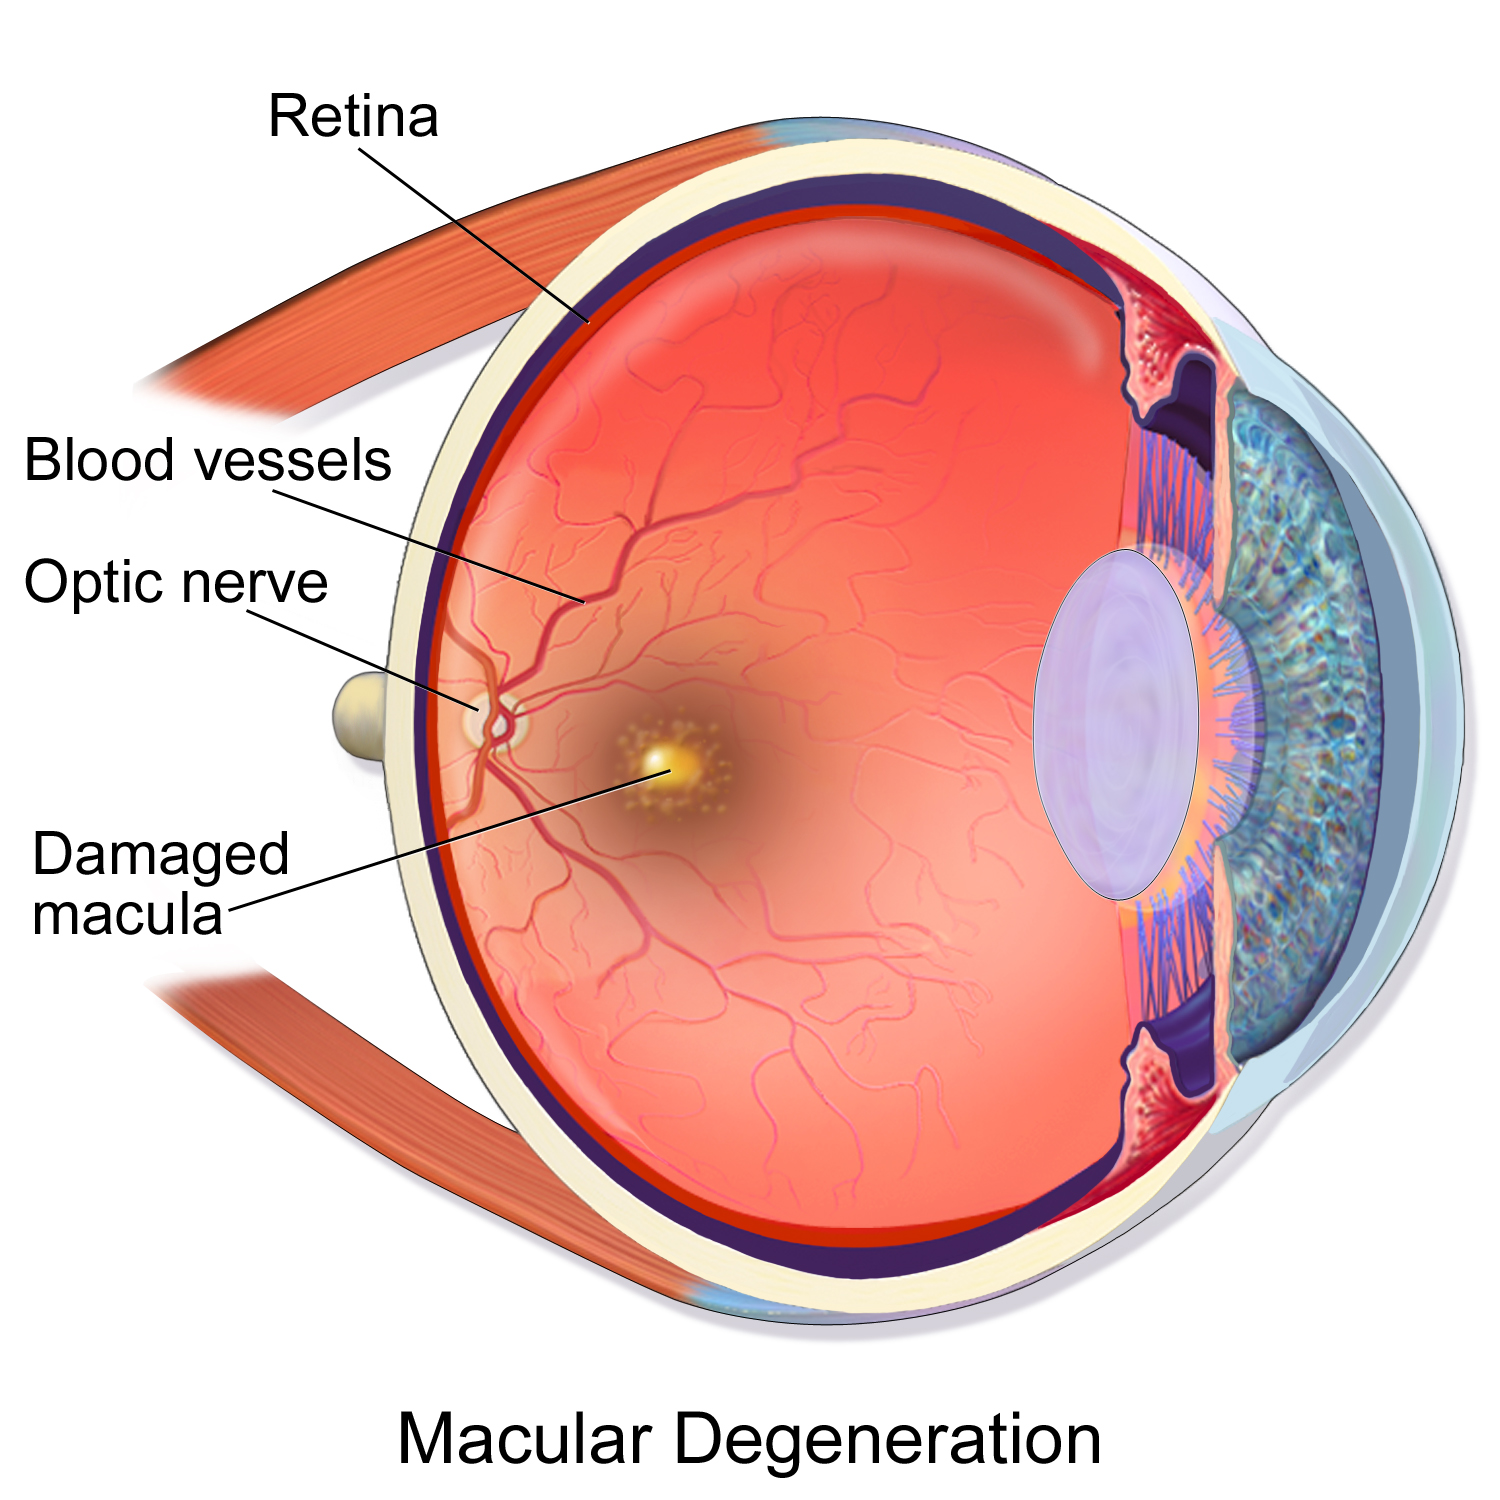 Macular Degeneration - AMD is a visual disorder characterized by a large blind spot in the center of the field of vision. There are two types of AMD: Wet and Dry. In Dry-AMD, small white-yellow deposits called drusen form on the center of the retina which causes it to to degenerate over time. About 80% of all AMD cases are dry-AMD. Currently, there is no effective therapy for dry-AMD.Learn more ➝